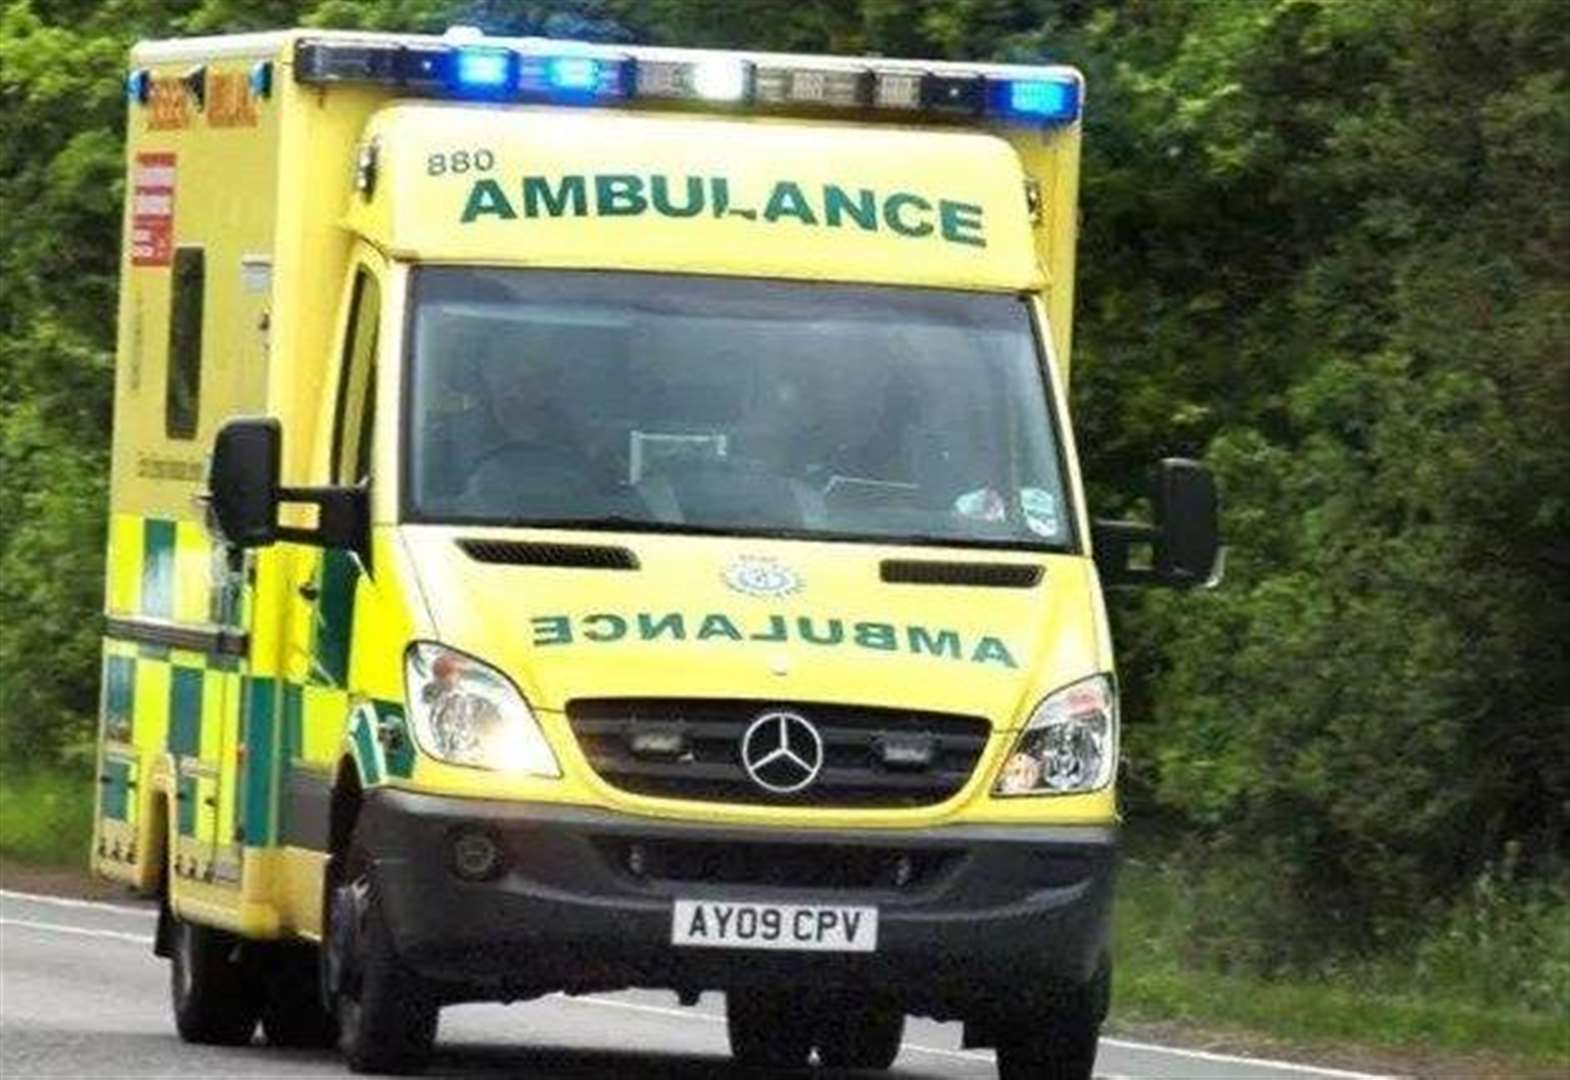 More than 140 new ambulances for East Midlands Ambulance Service before the end of March